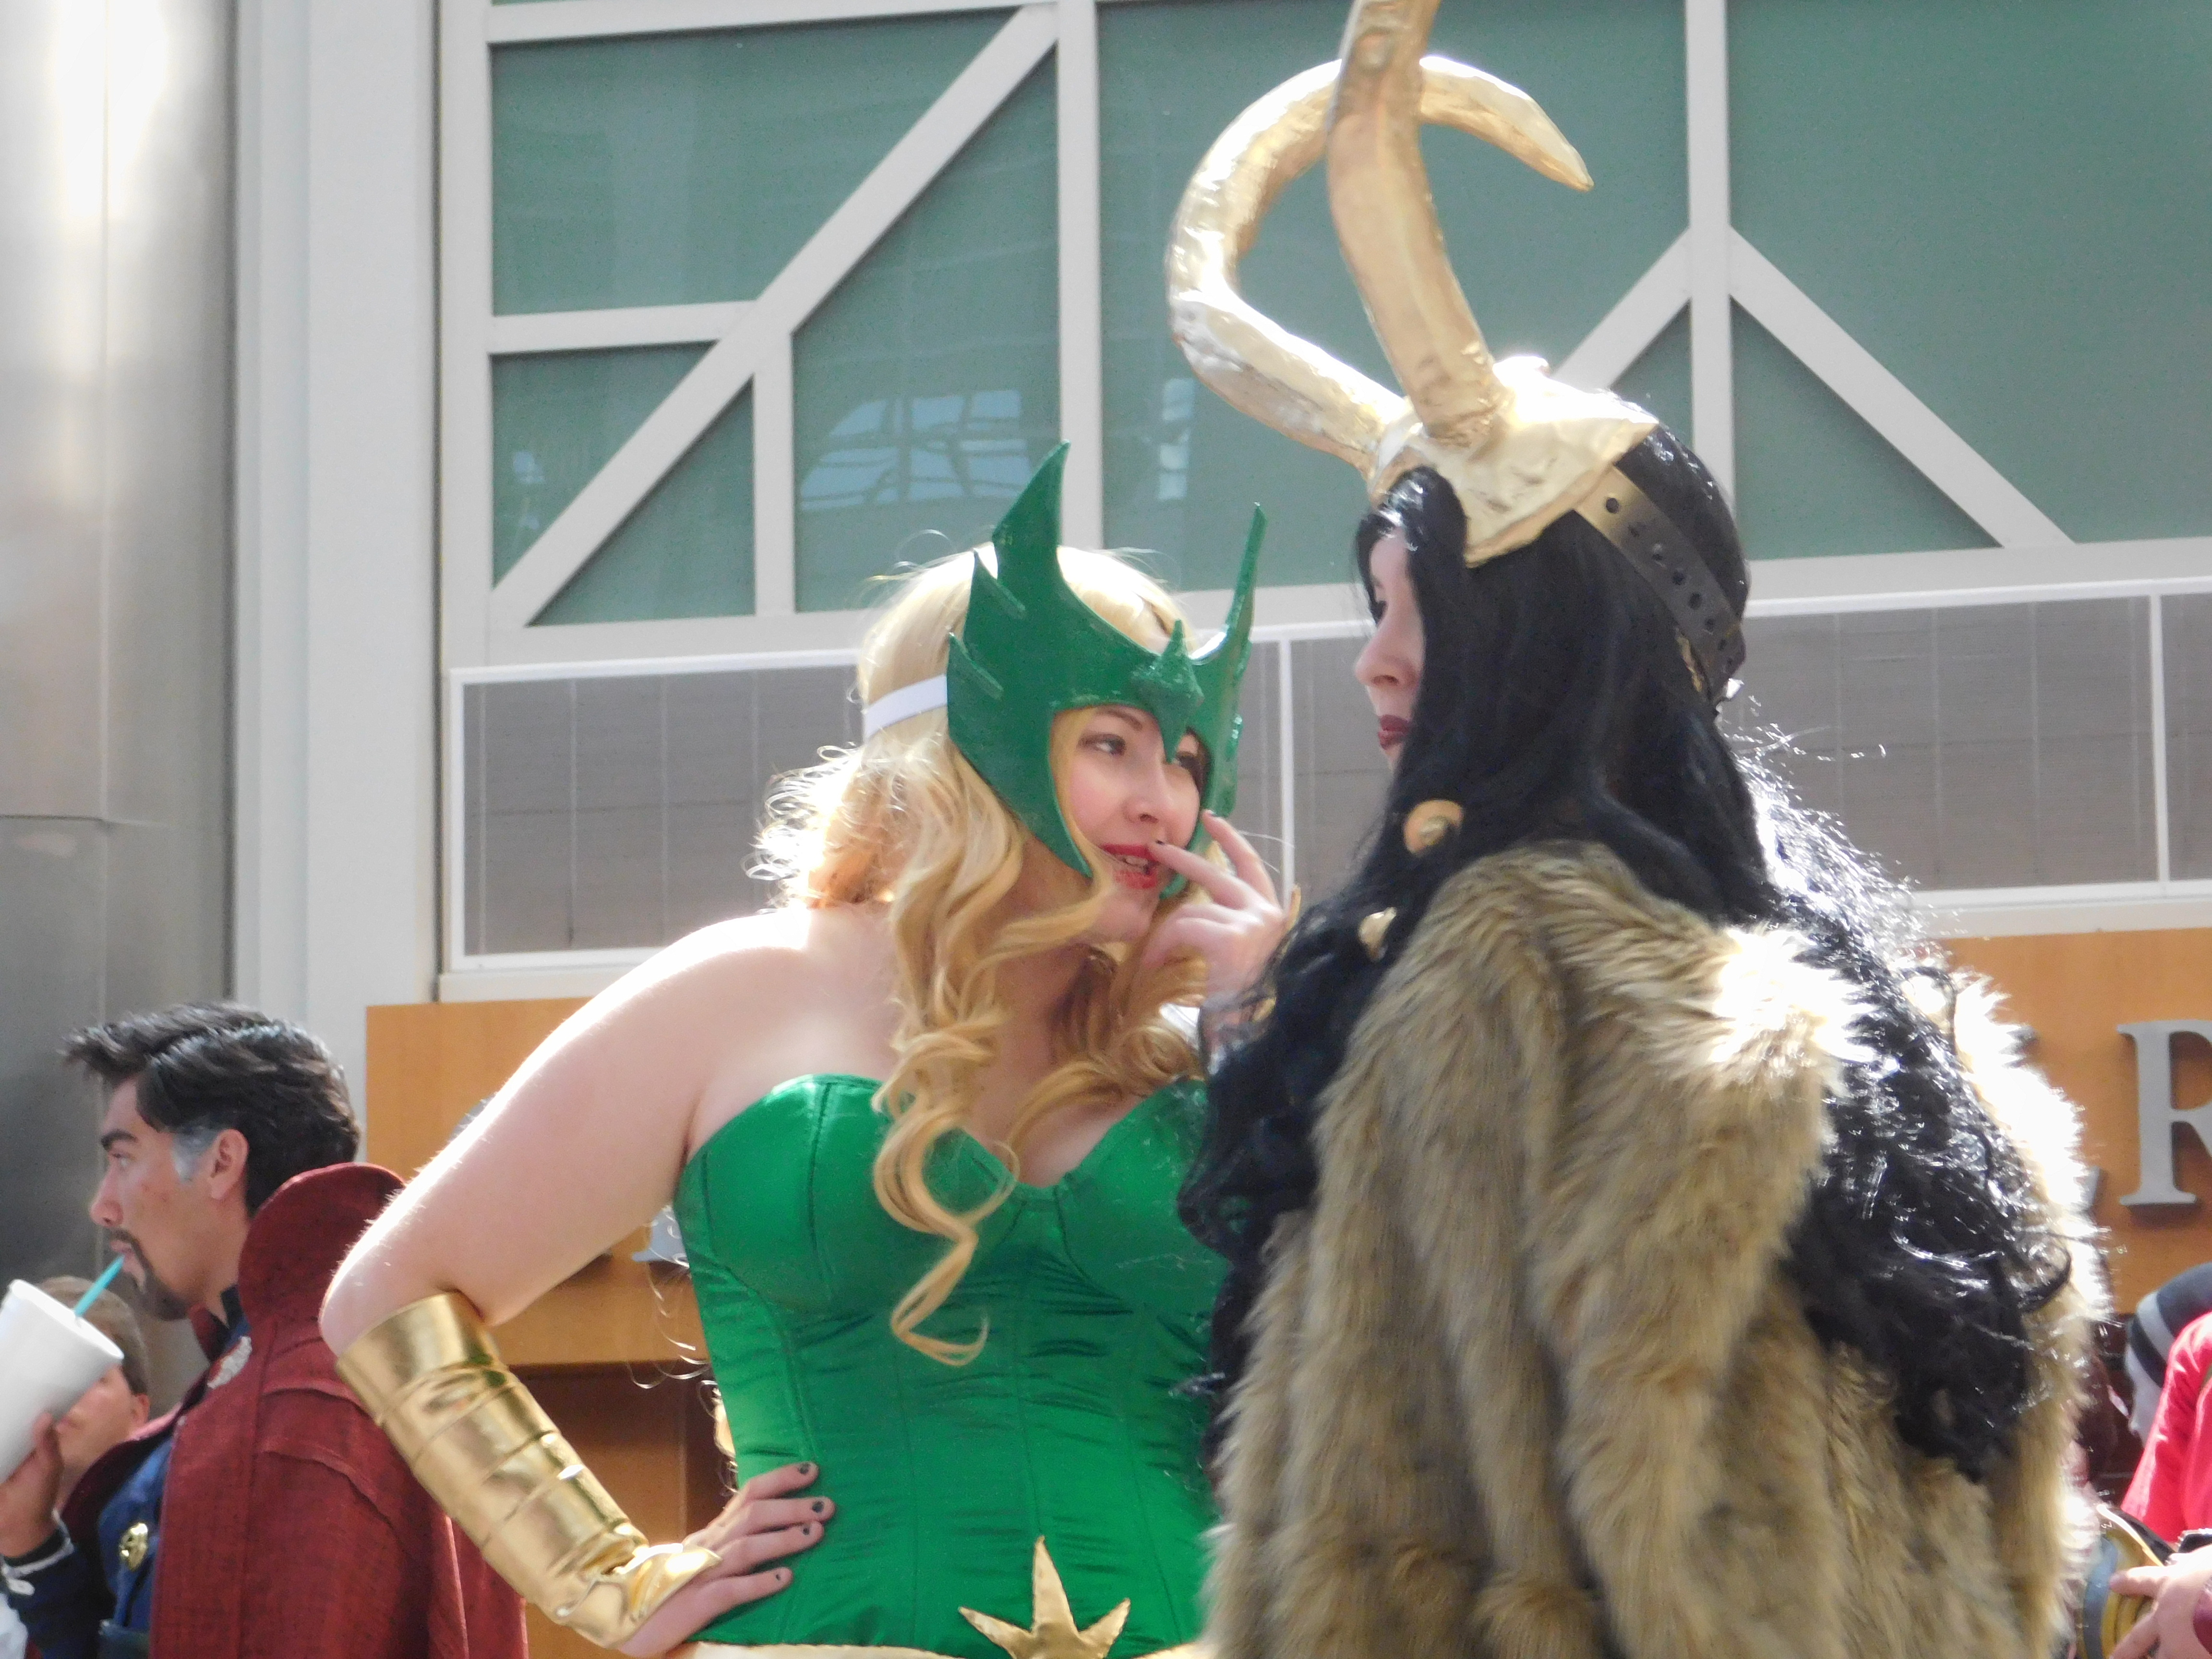 SLCCd2.031 - What kind of mischief are Loki and the Enchantress getting up to